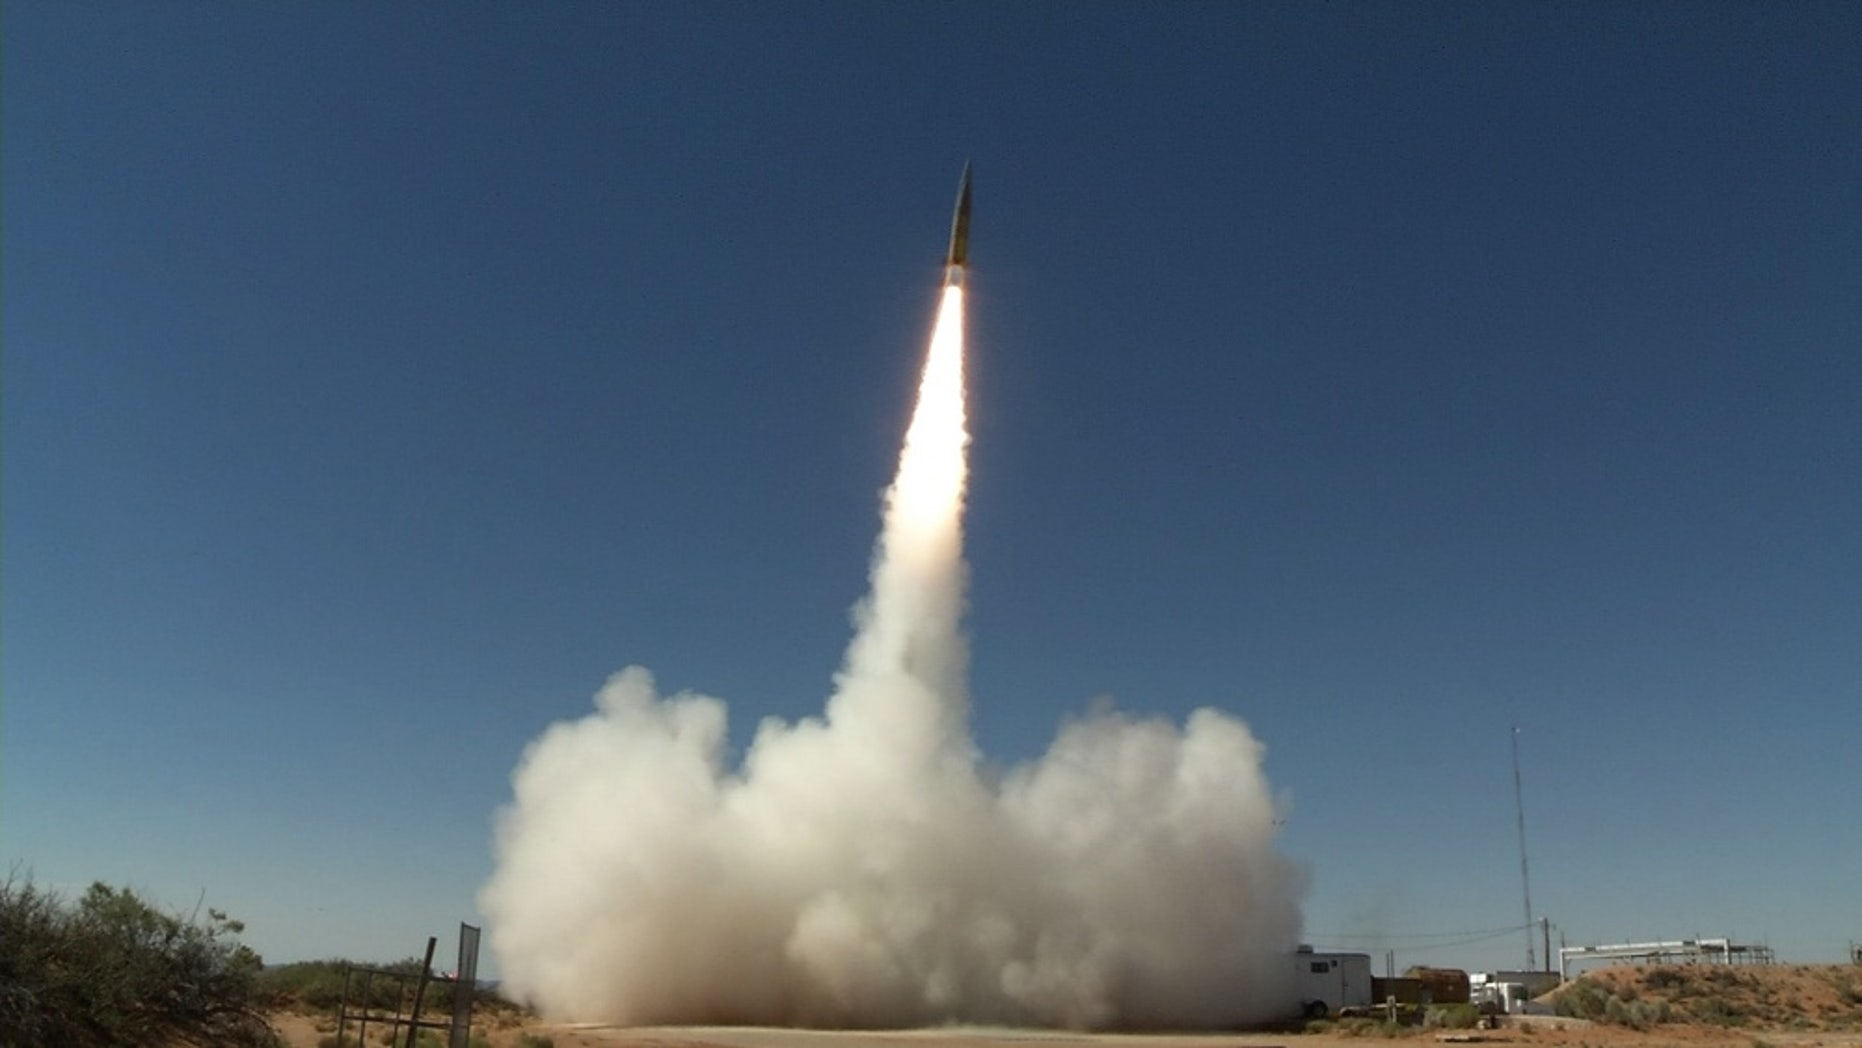 File photo - A Sabre short-range ballistic missile launches in June 2017 at White Sands Missile Range, New Mexico, for a test of the Patriot Advanced Capability-3 (PAC-3) Missile Segment Enhancement. (U.S. Army photo by U.S. Army Space and Missile Defense Command/Army Forces Strategic Command)